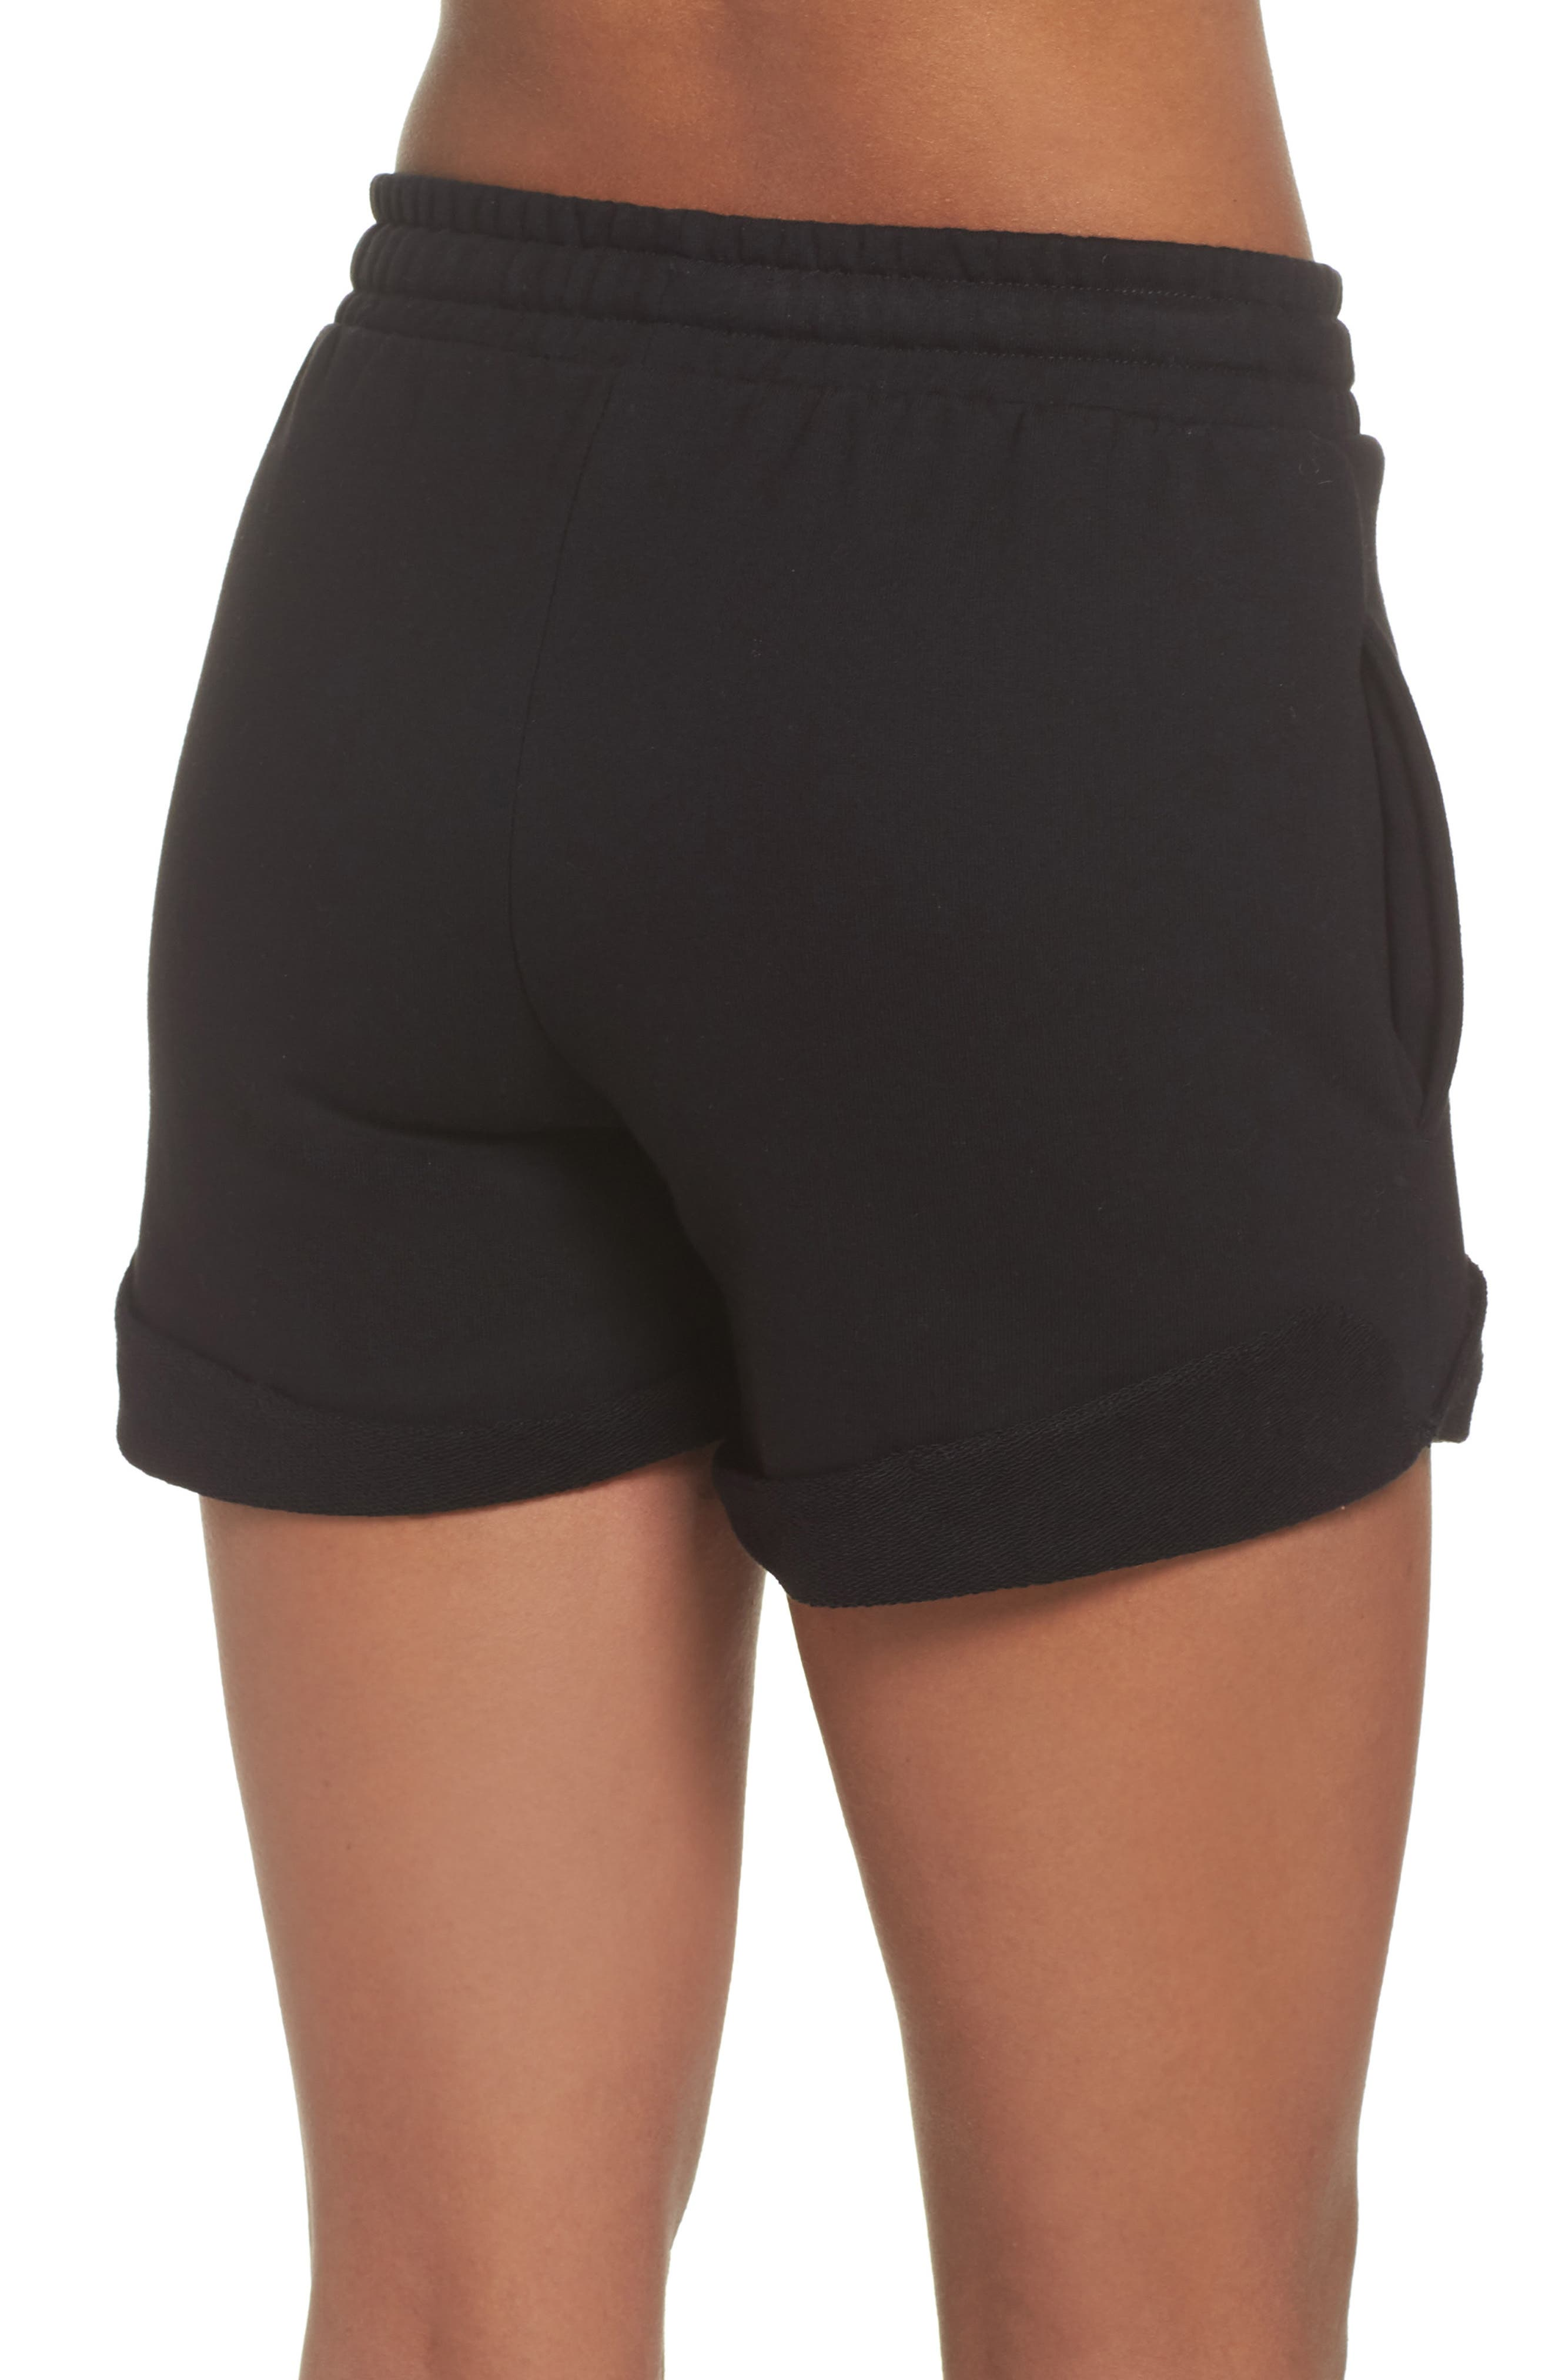 French Terry High Waist Shorts,                             Alternate thumbnail 2, color,                             Black